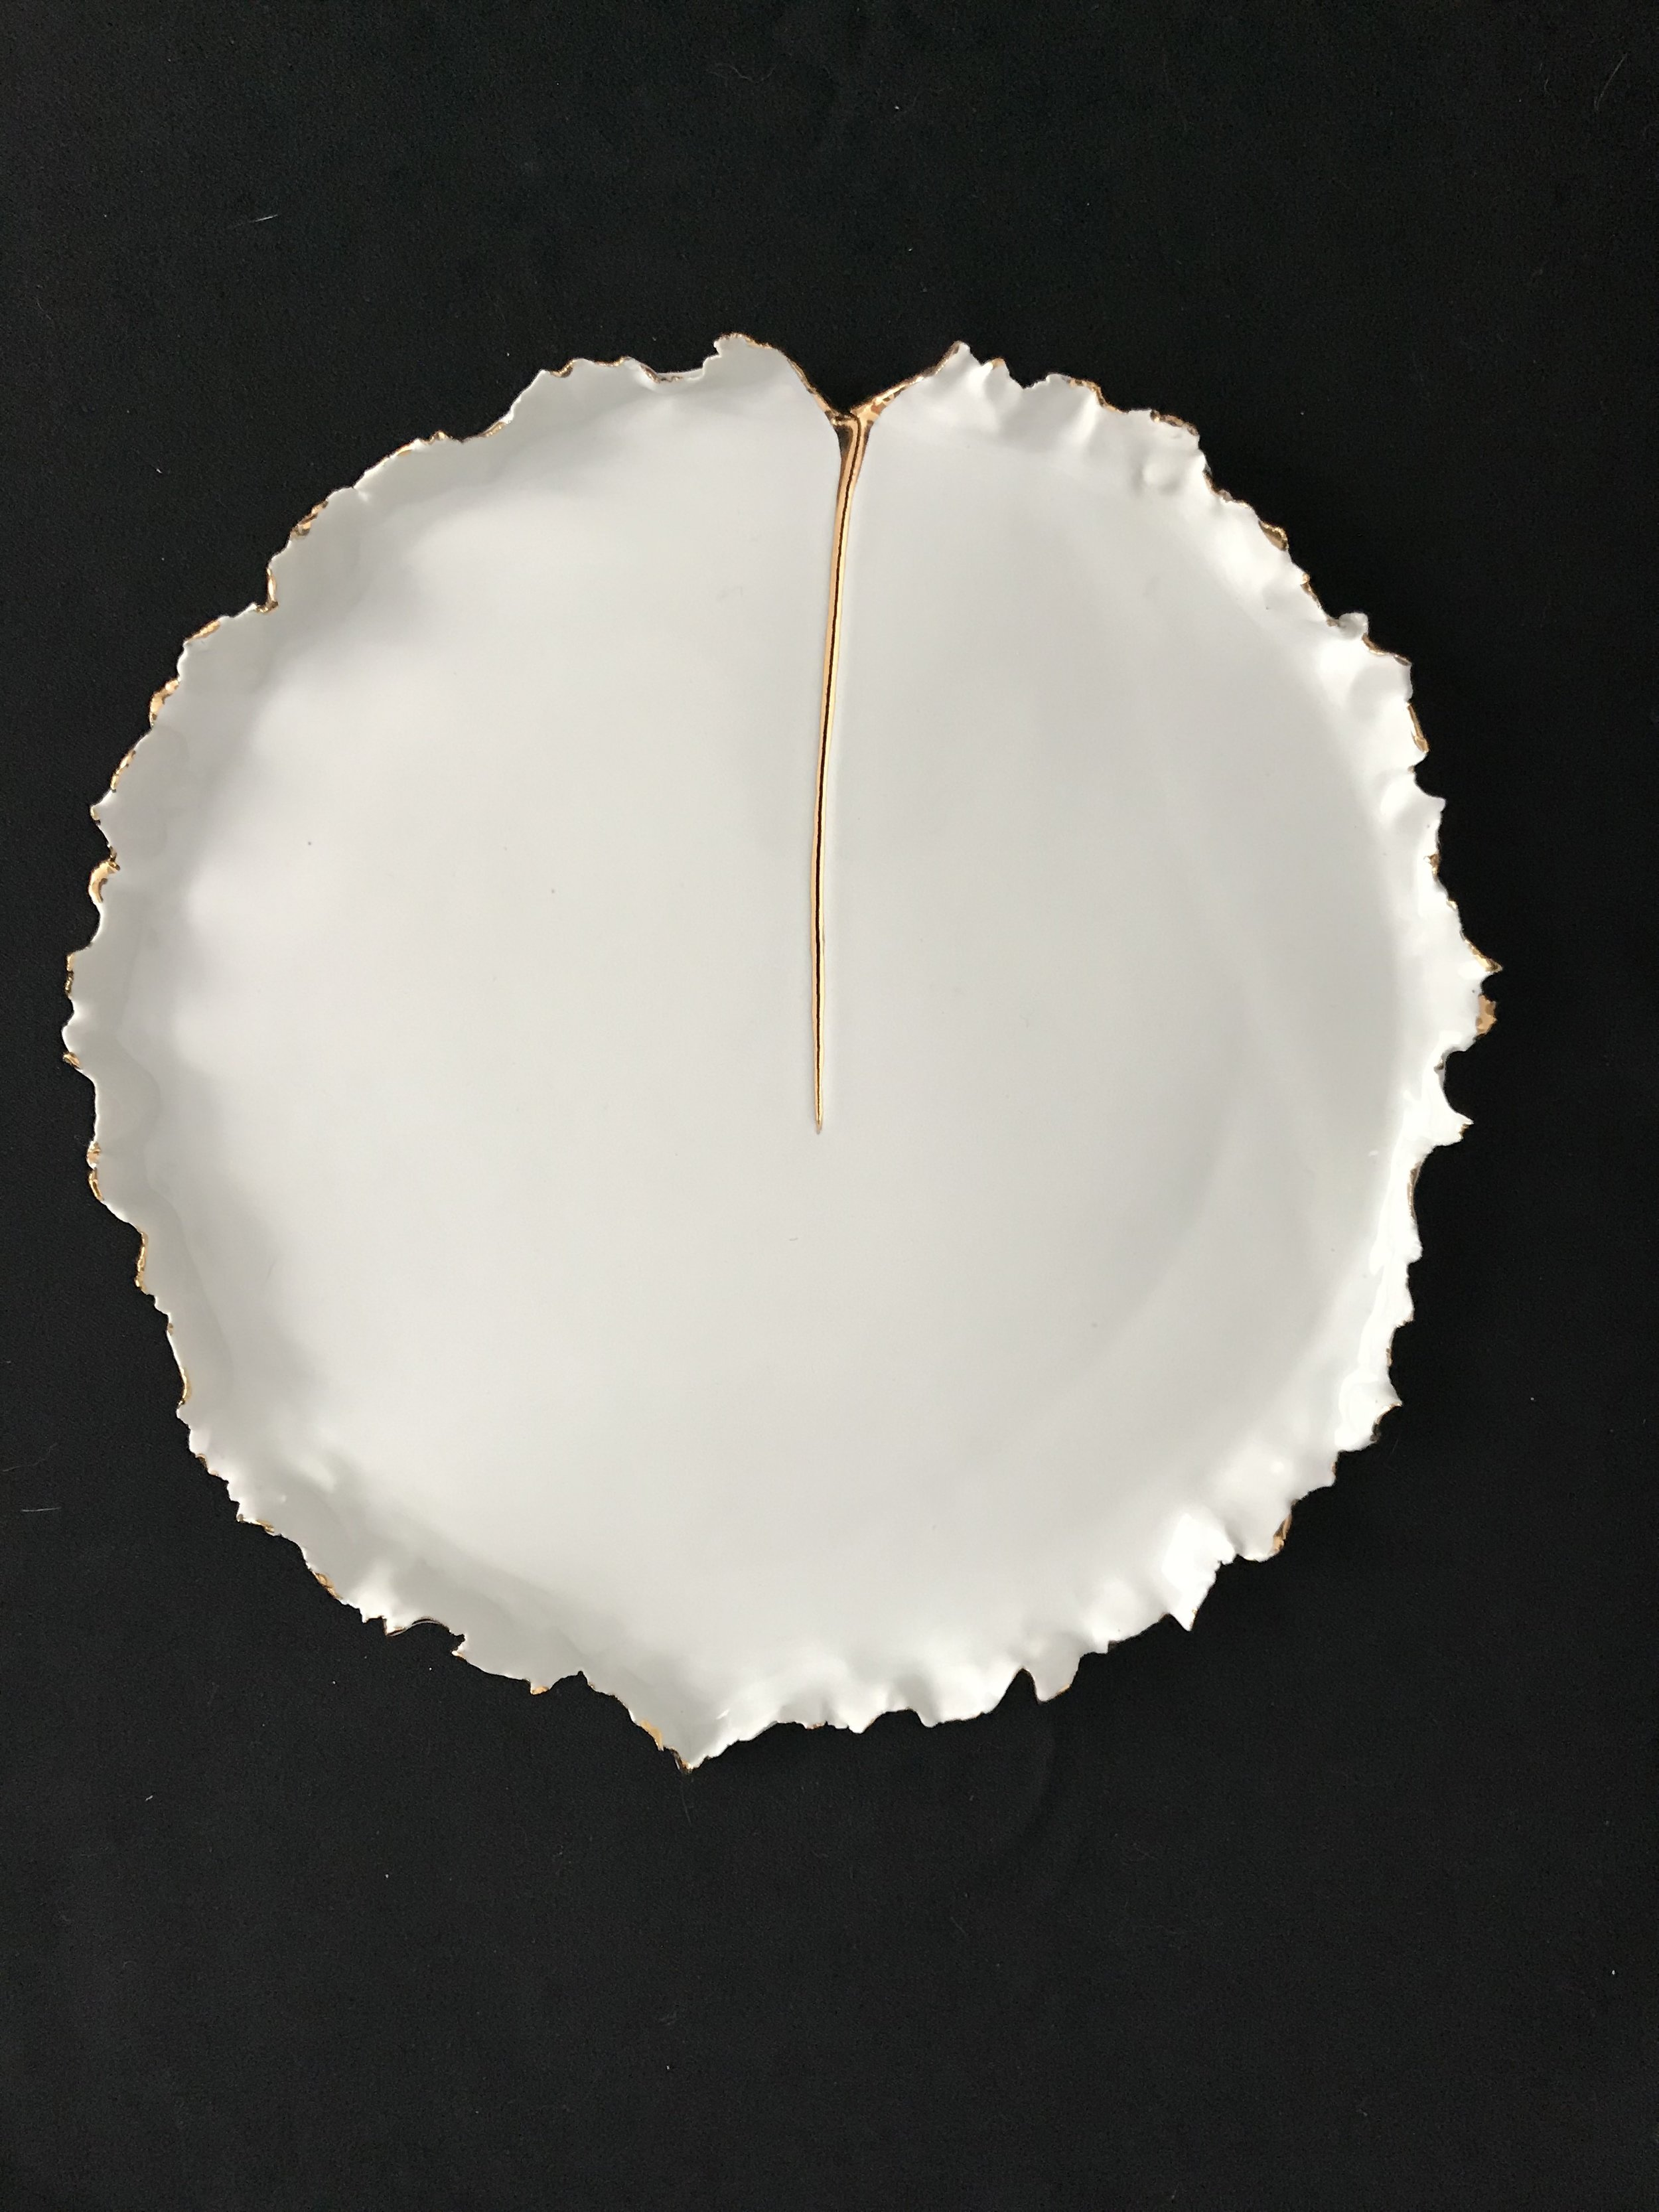 "Victoria Lotus Leaf: How the Light Gets In (Linear),  glazed porcelain with gold cracked area and interspersed on rim, 1""H rim x 10.5"" diameter, 2018  $275"